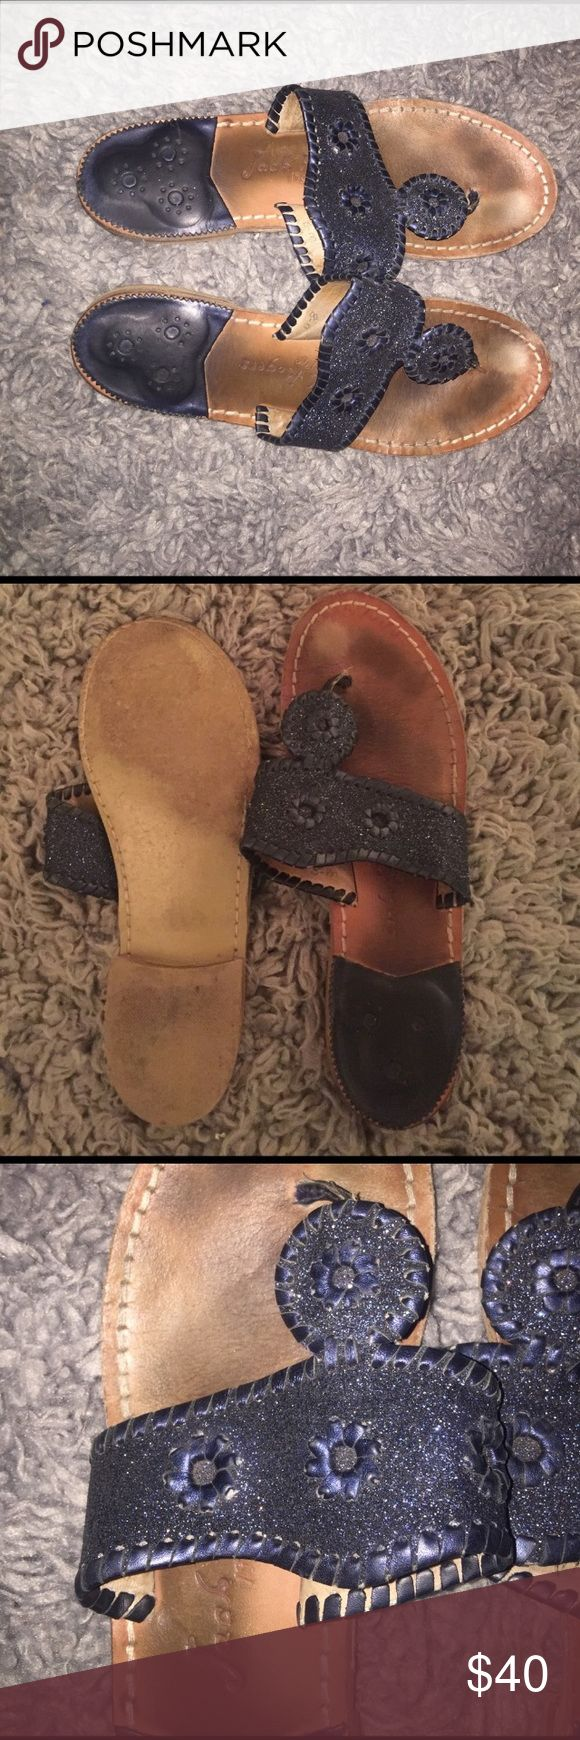 😎💙 Midnight Black Jack Rodgers sz 8 😍🌴 😎💙 Midnight Black Jack Rodgers sz 8 😍🌴... perfect black jacks with just a hint of sparkle Jack Rogers Shoes Sandals